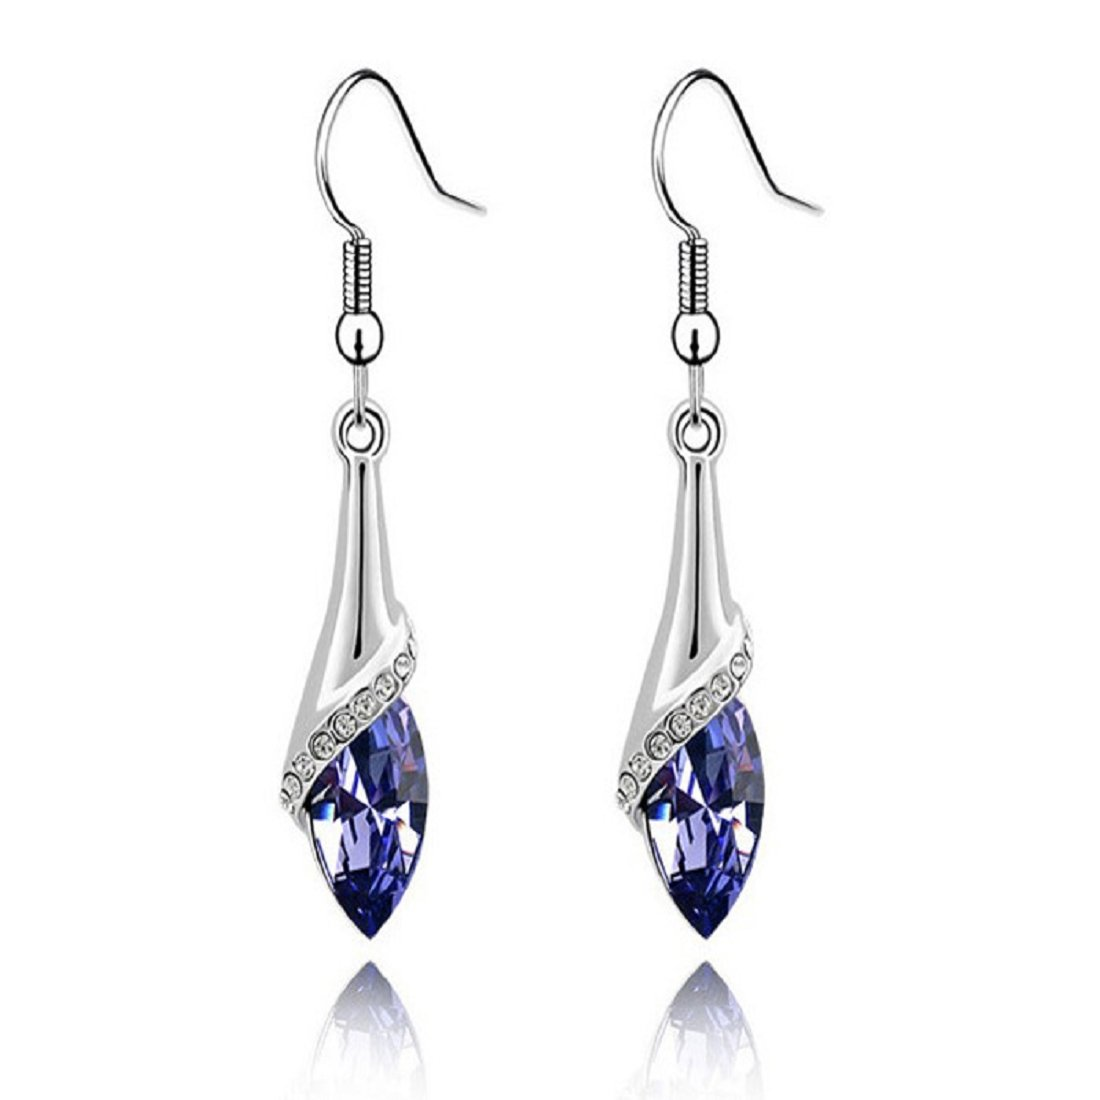 Voberry Fahion Women's Lady Crystal Marquise Cut Teardrop Wedding Hook Earrings Gift (Purple)